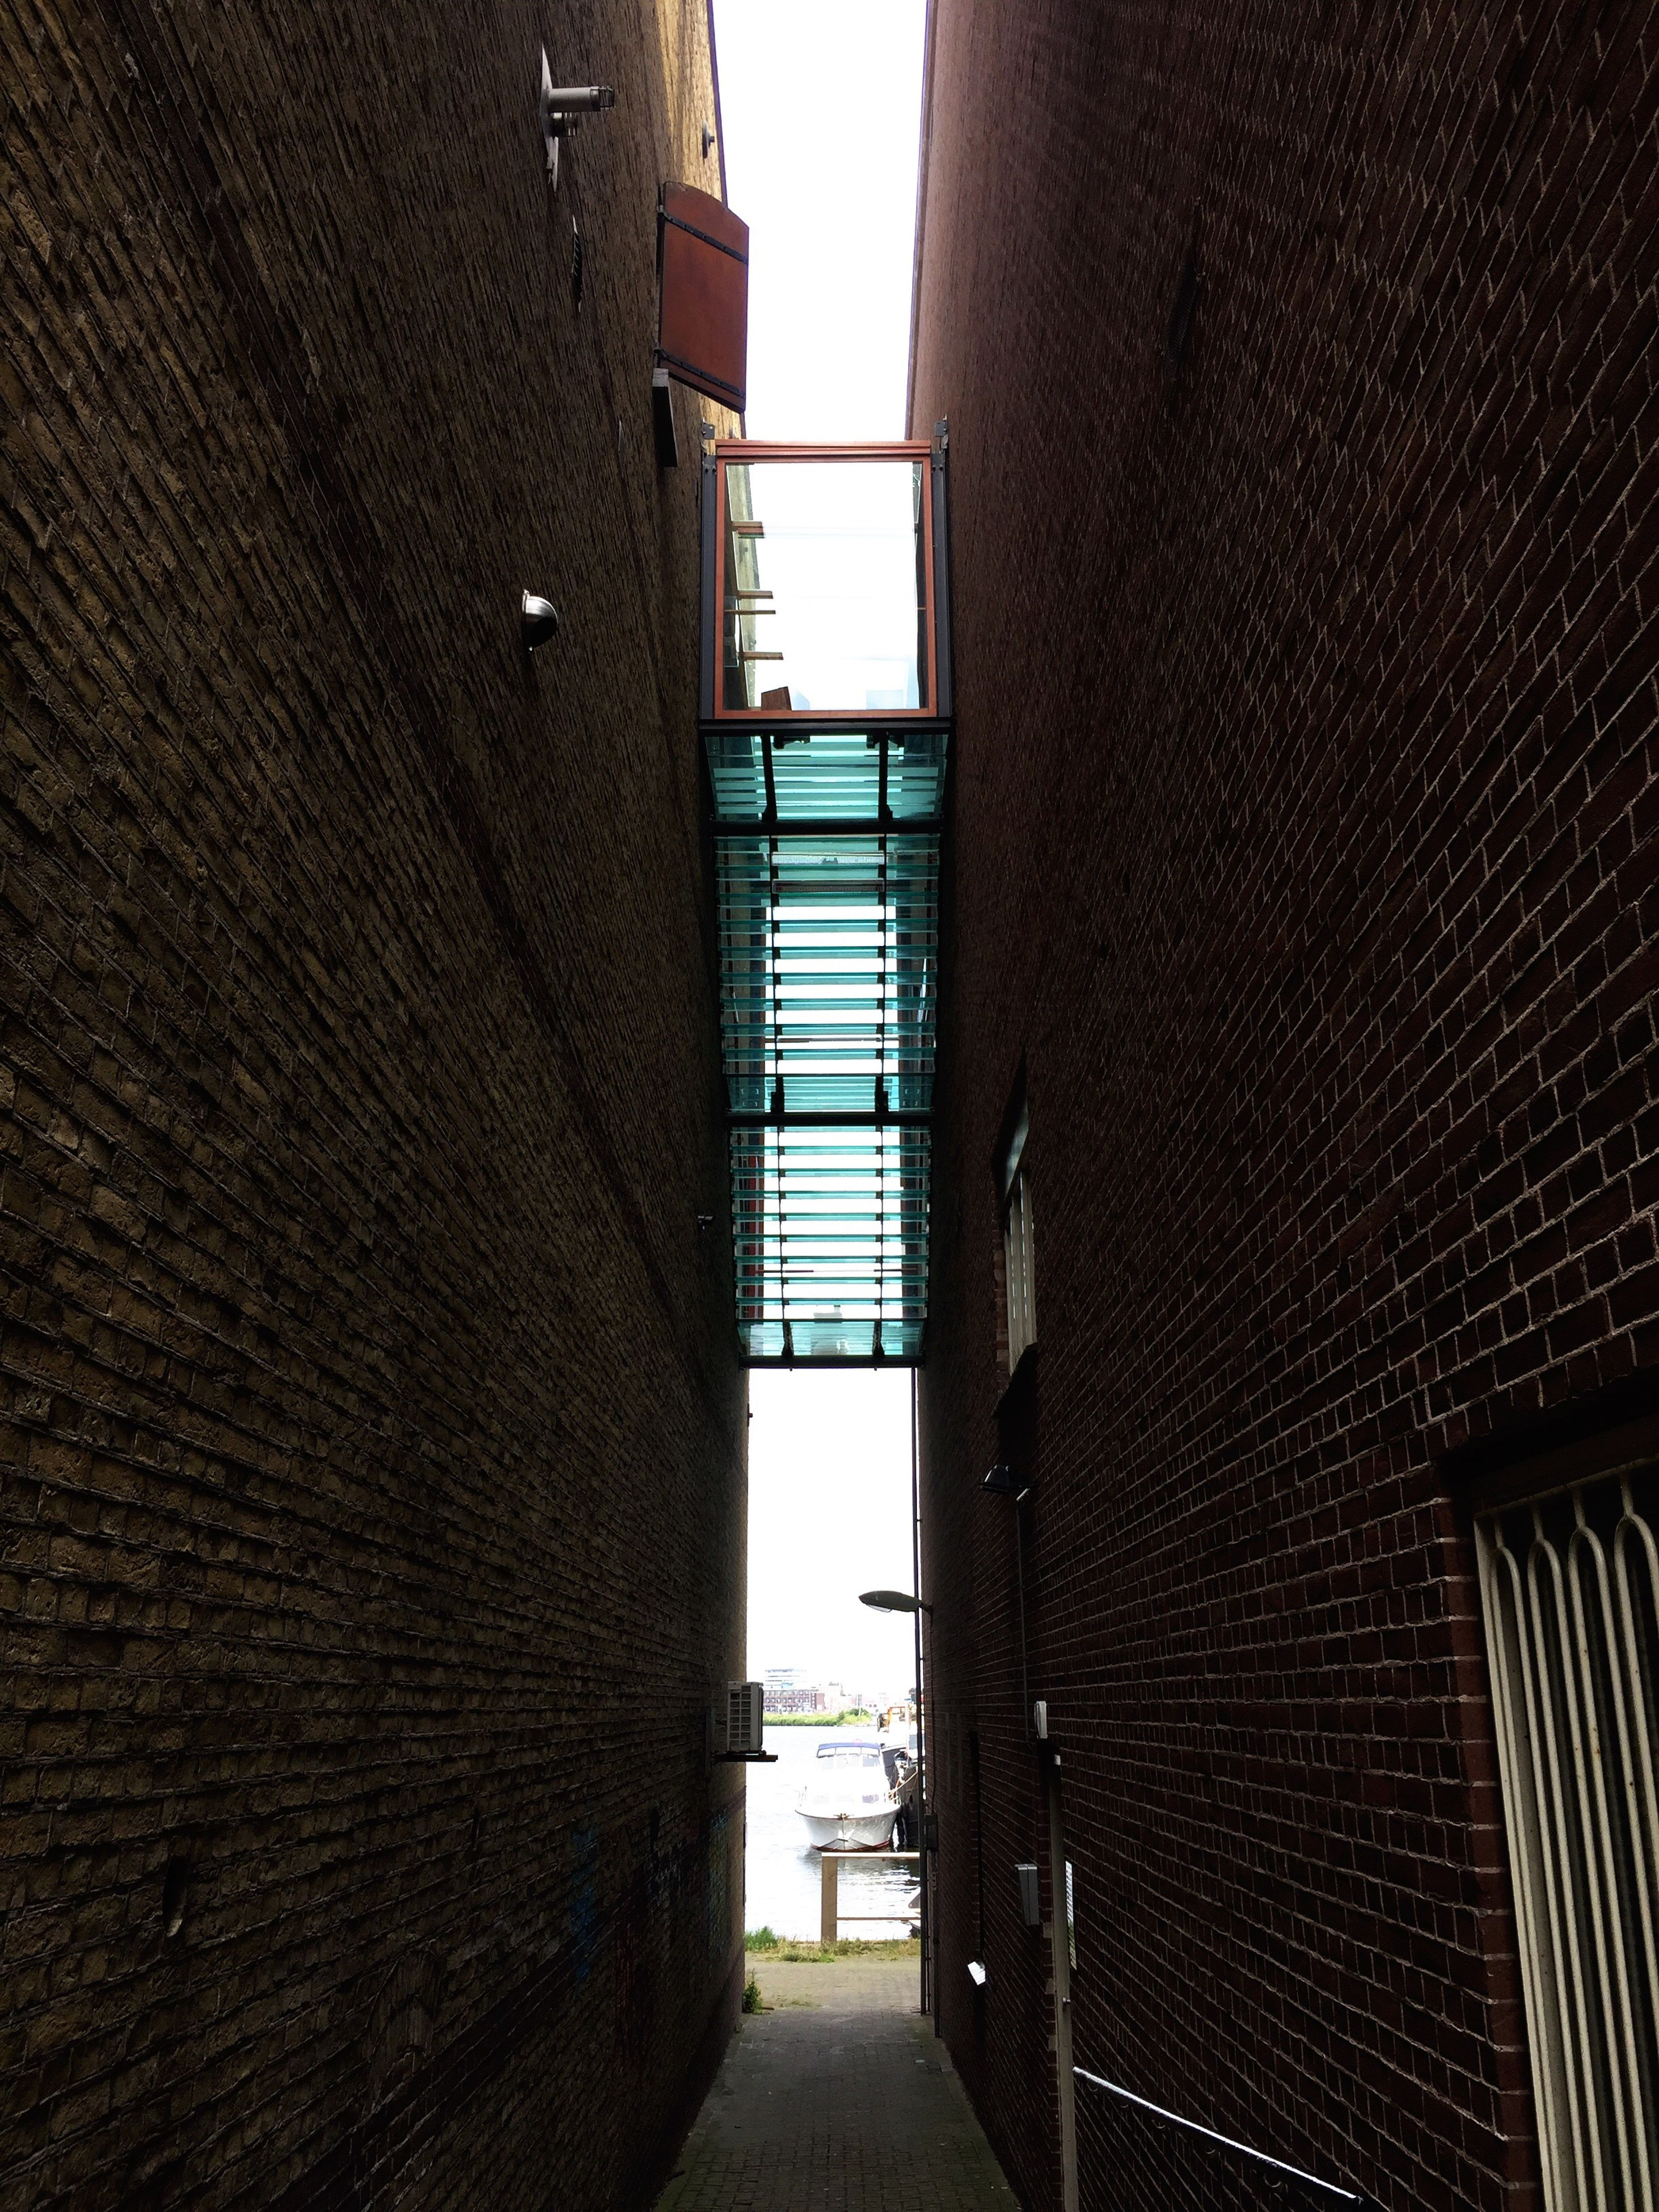 architecture, built structure, the way forward, narrow, building exterior, long, wall - building feature, walkway, day, in a row, clear sky, diminishing perspective, pathway, sky, alley, outdoors, arched, tall, surface level